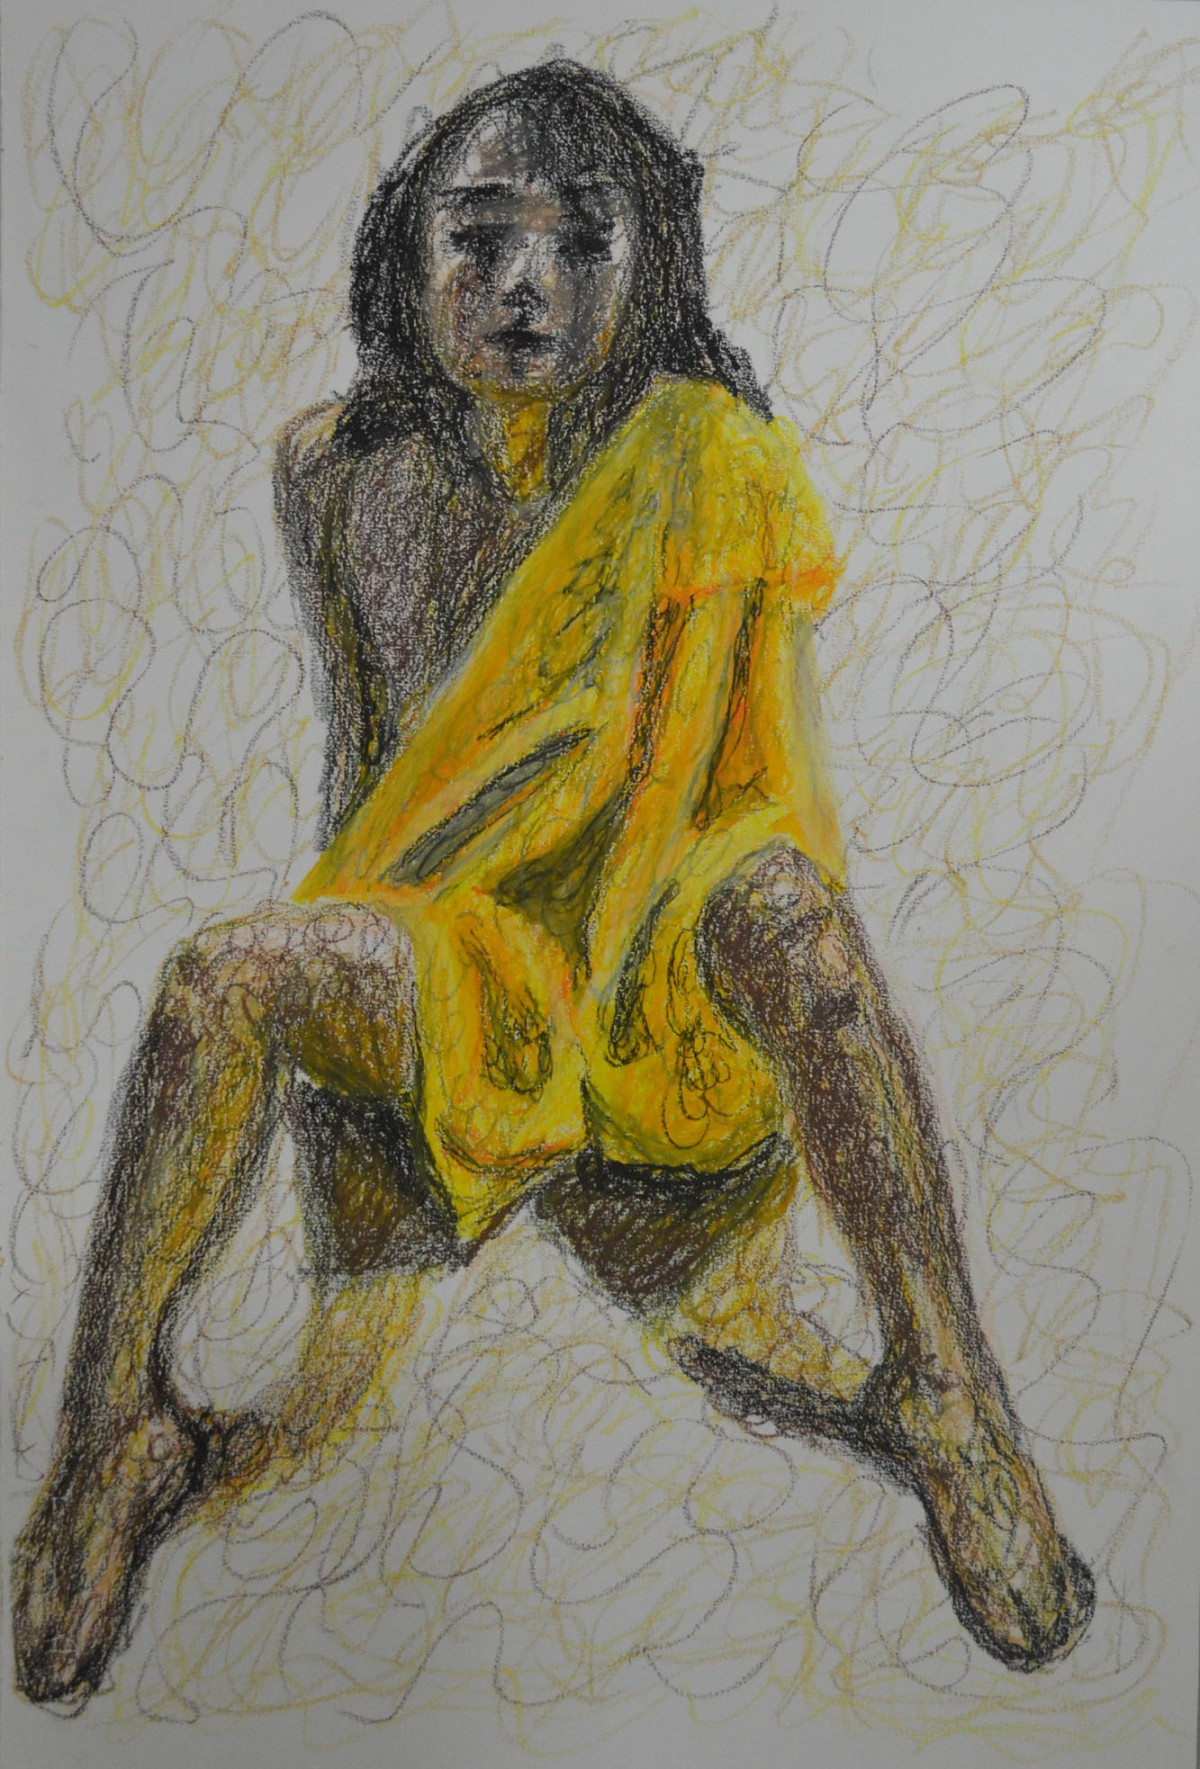 1 - Oil Pastel with Robe and Squiggles